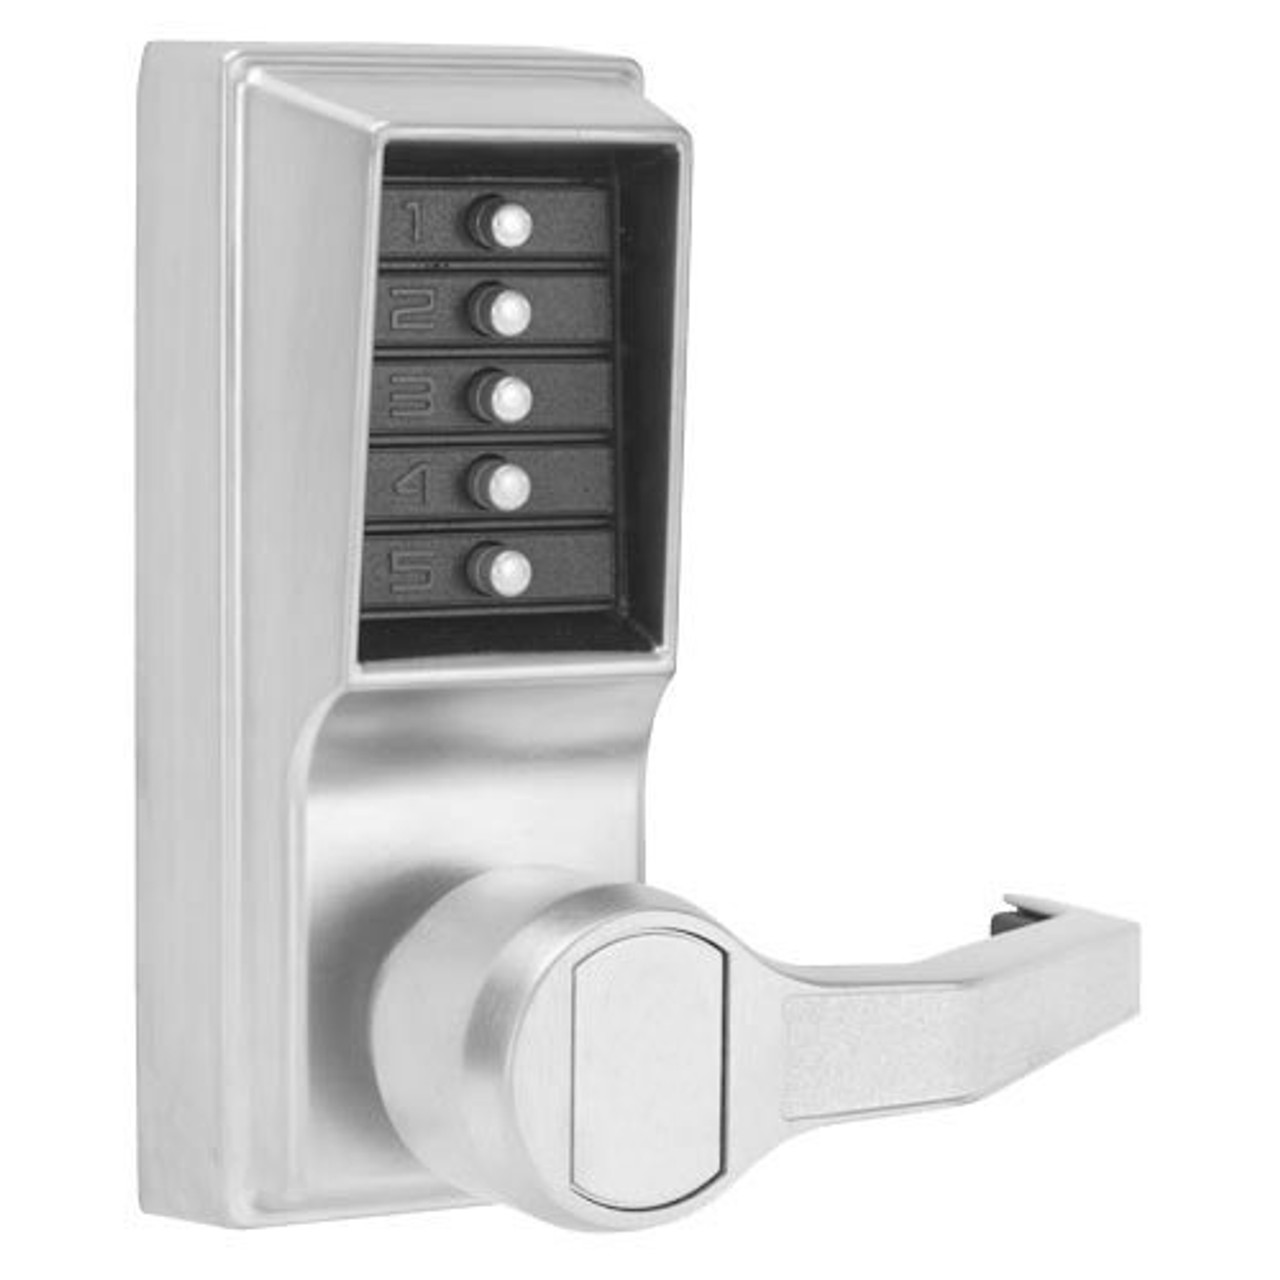 LR1011-26D-41 Simplex Pushbutton Lever Lock with No Key Override in Satin Chrome